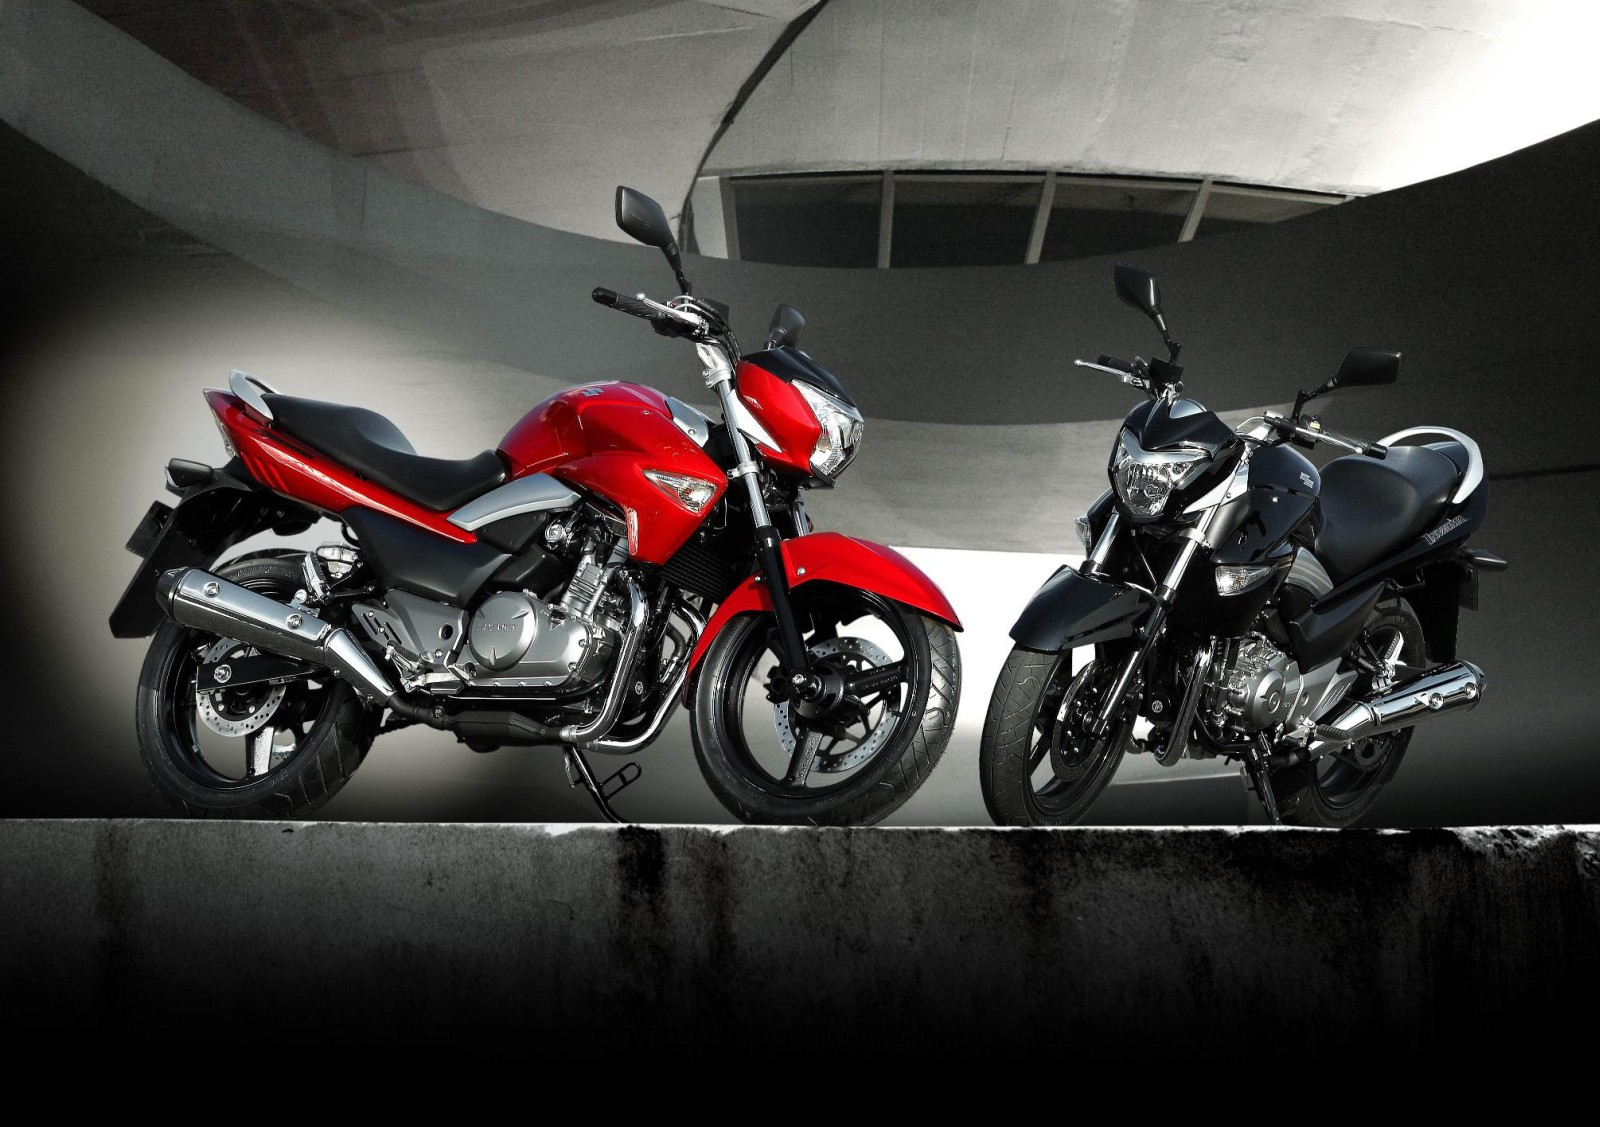 Suzuki Inazuma GW250 Red and black